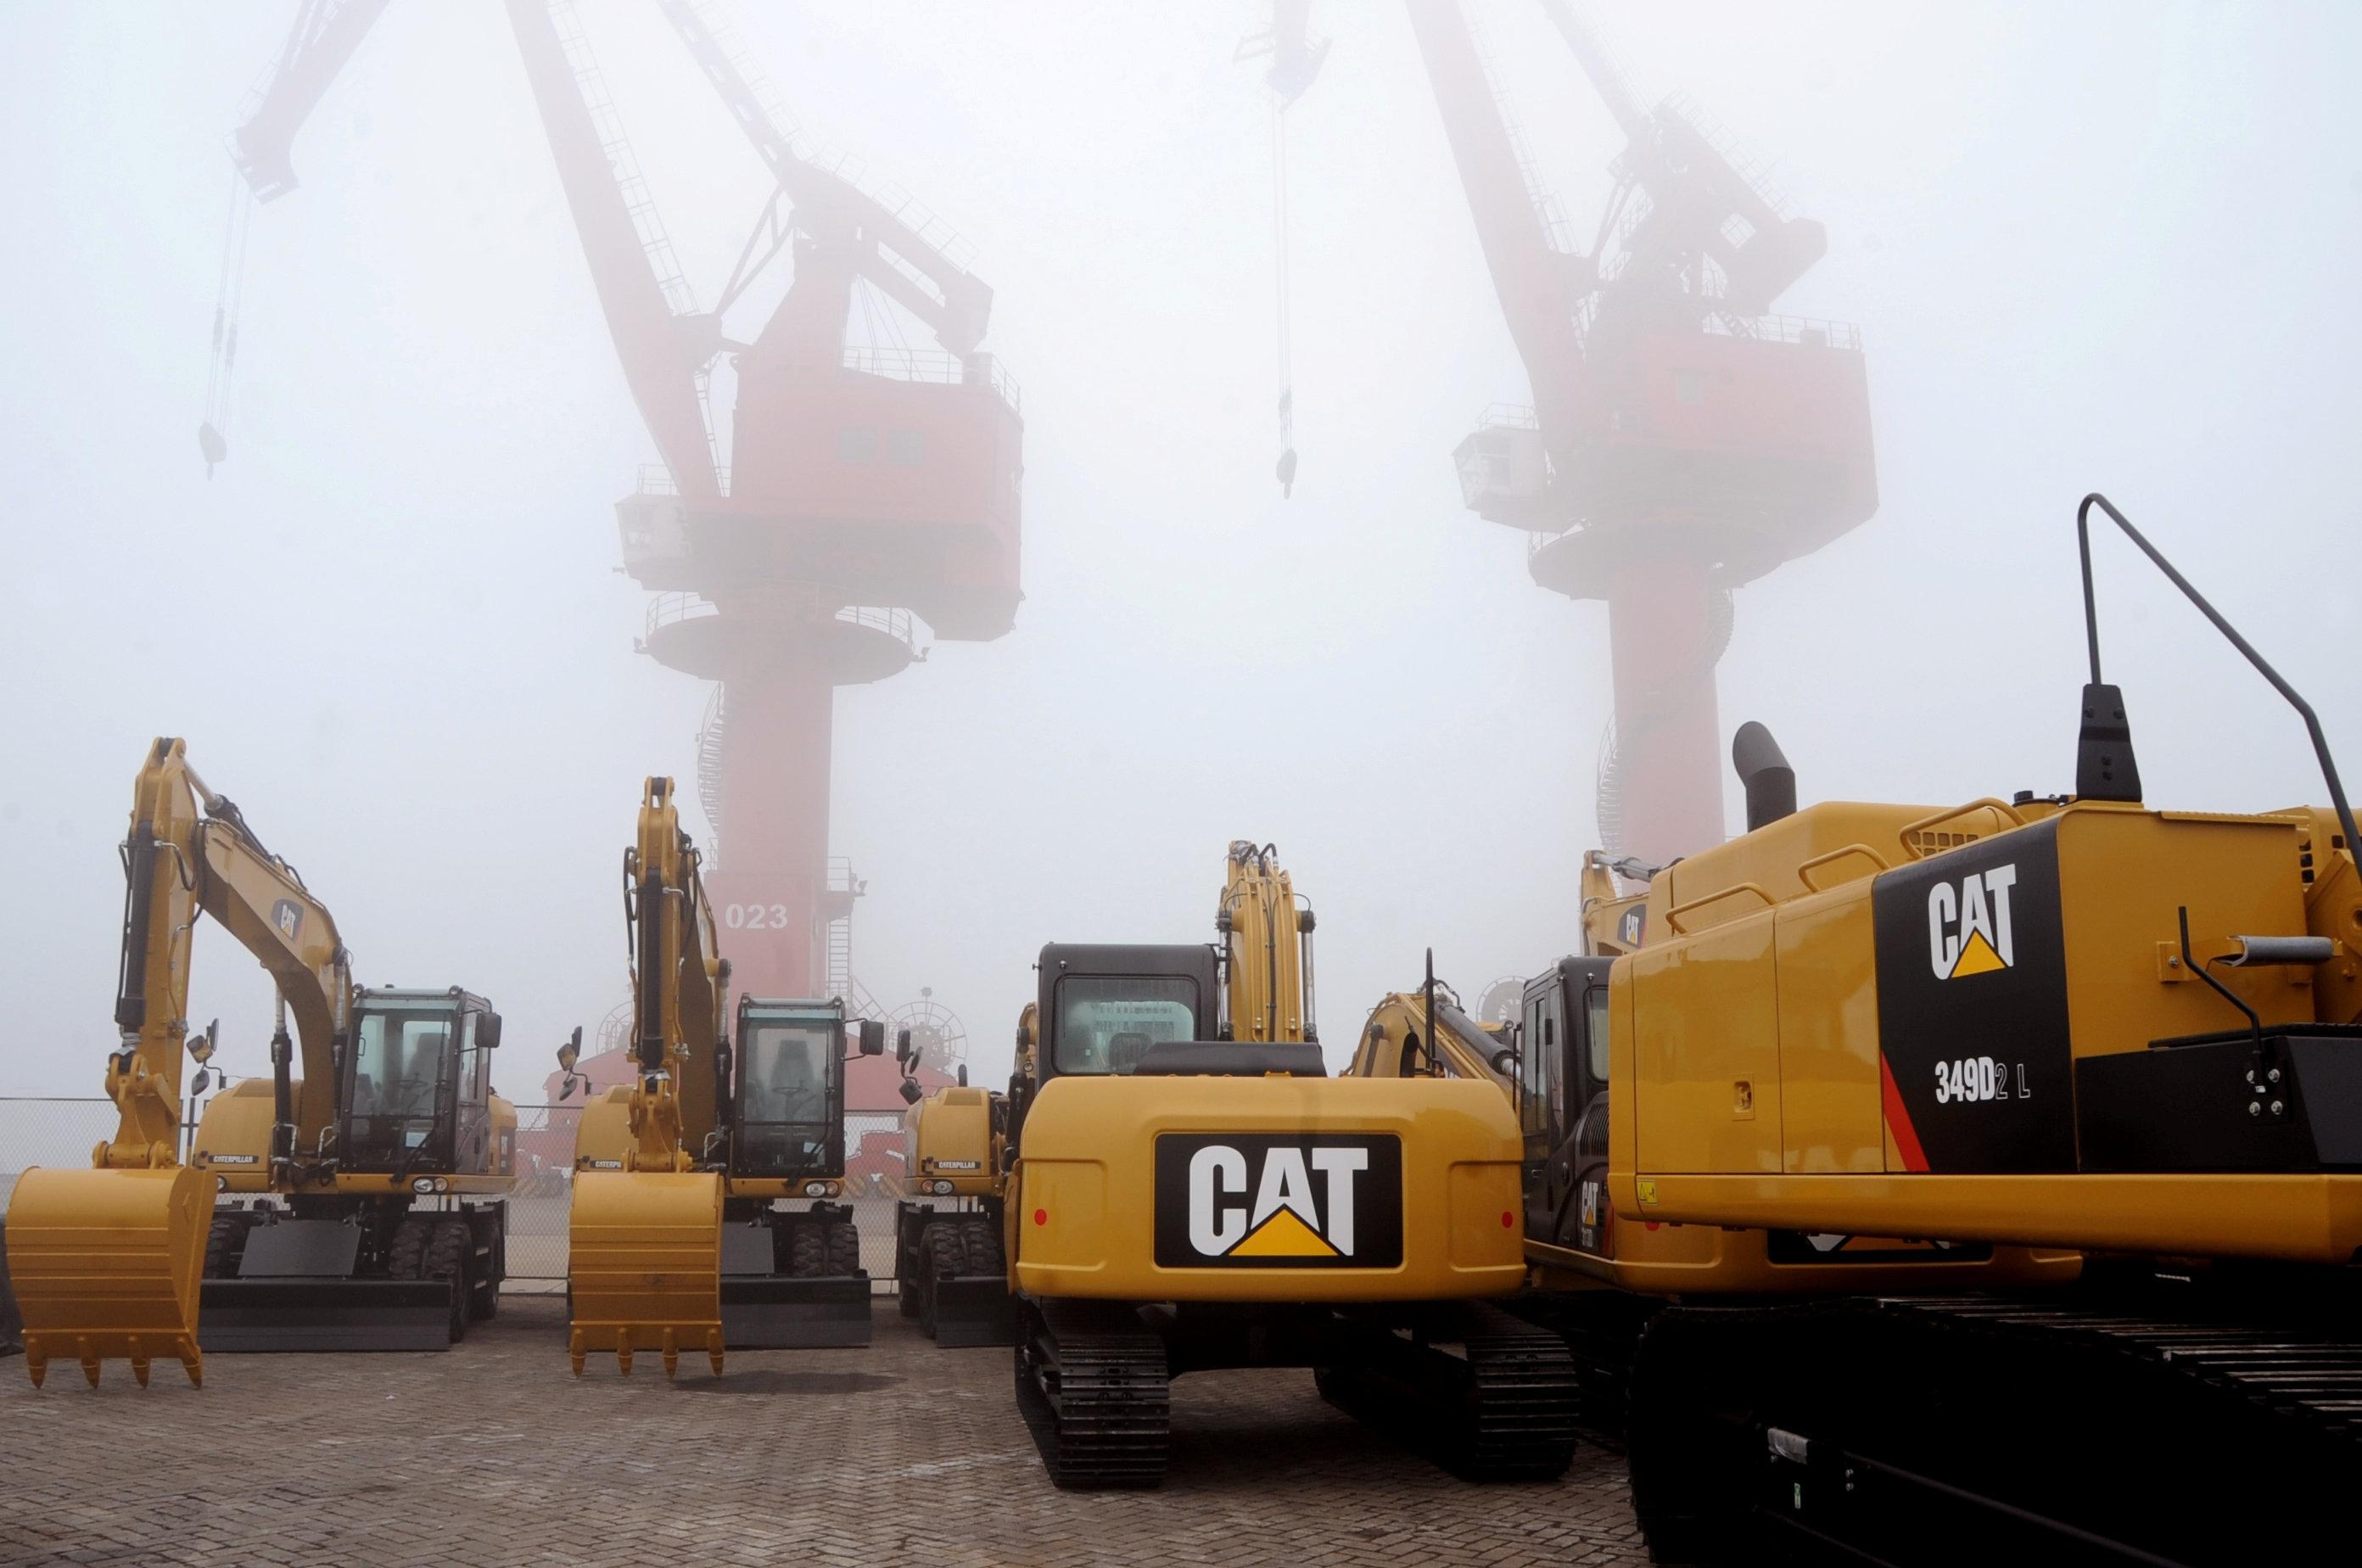 Caterpillar drives sales on China's new Silk Road - Reuters